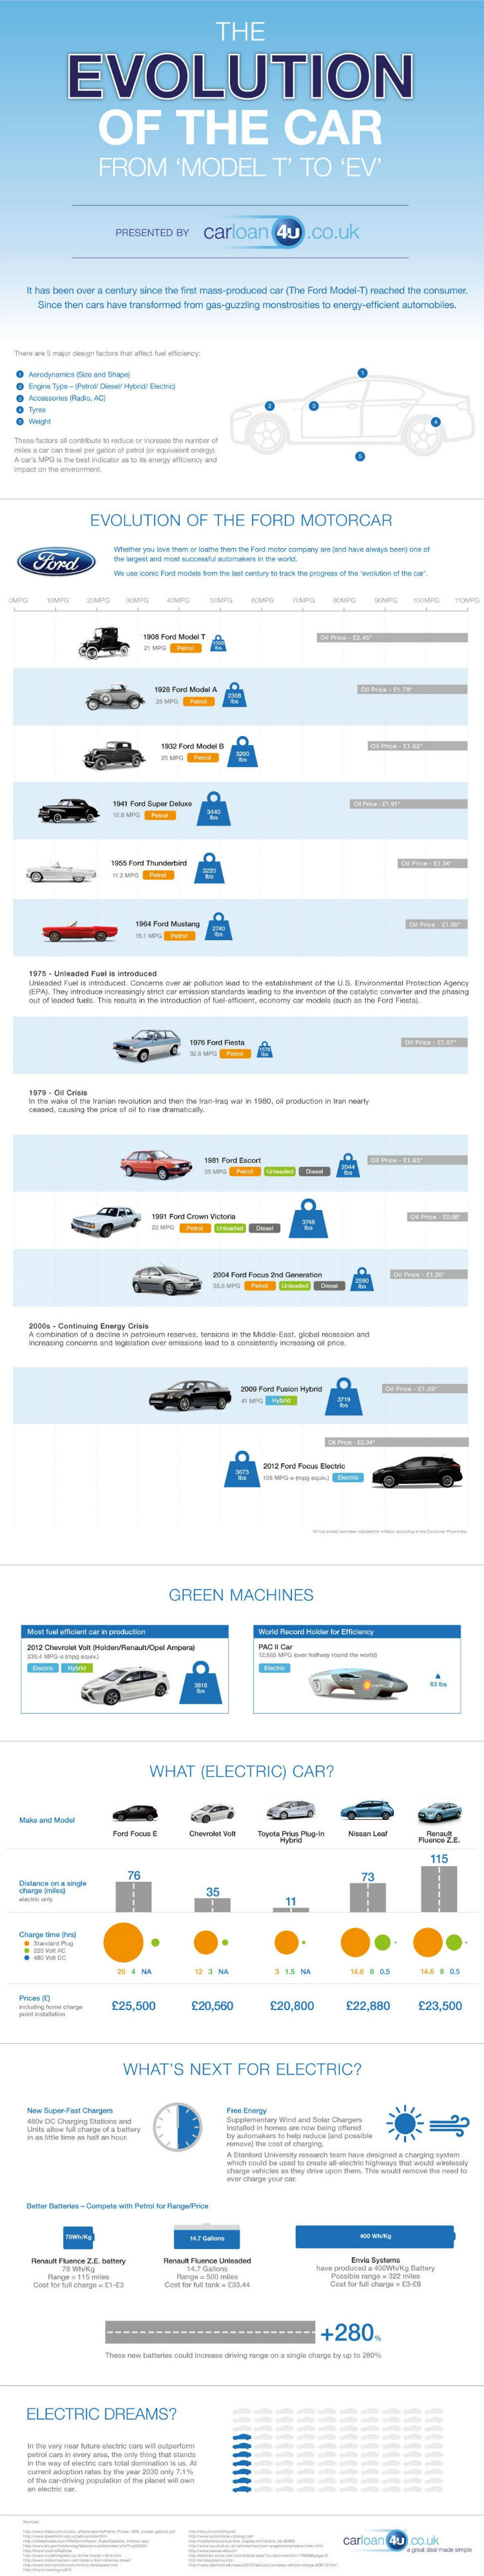 The evolution of a car